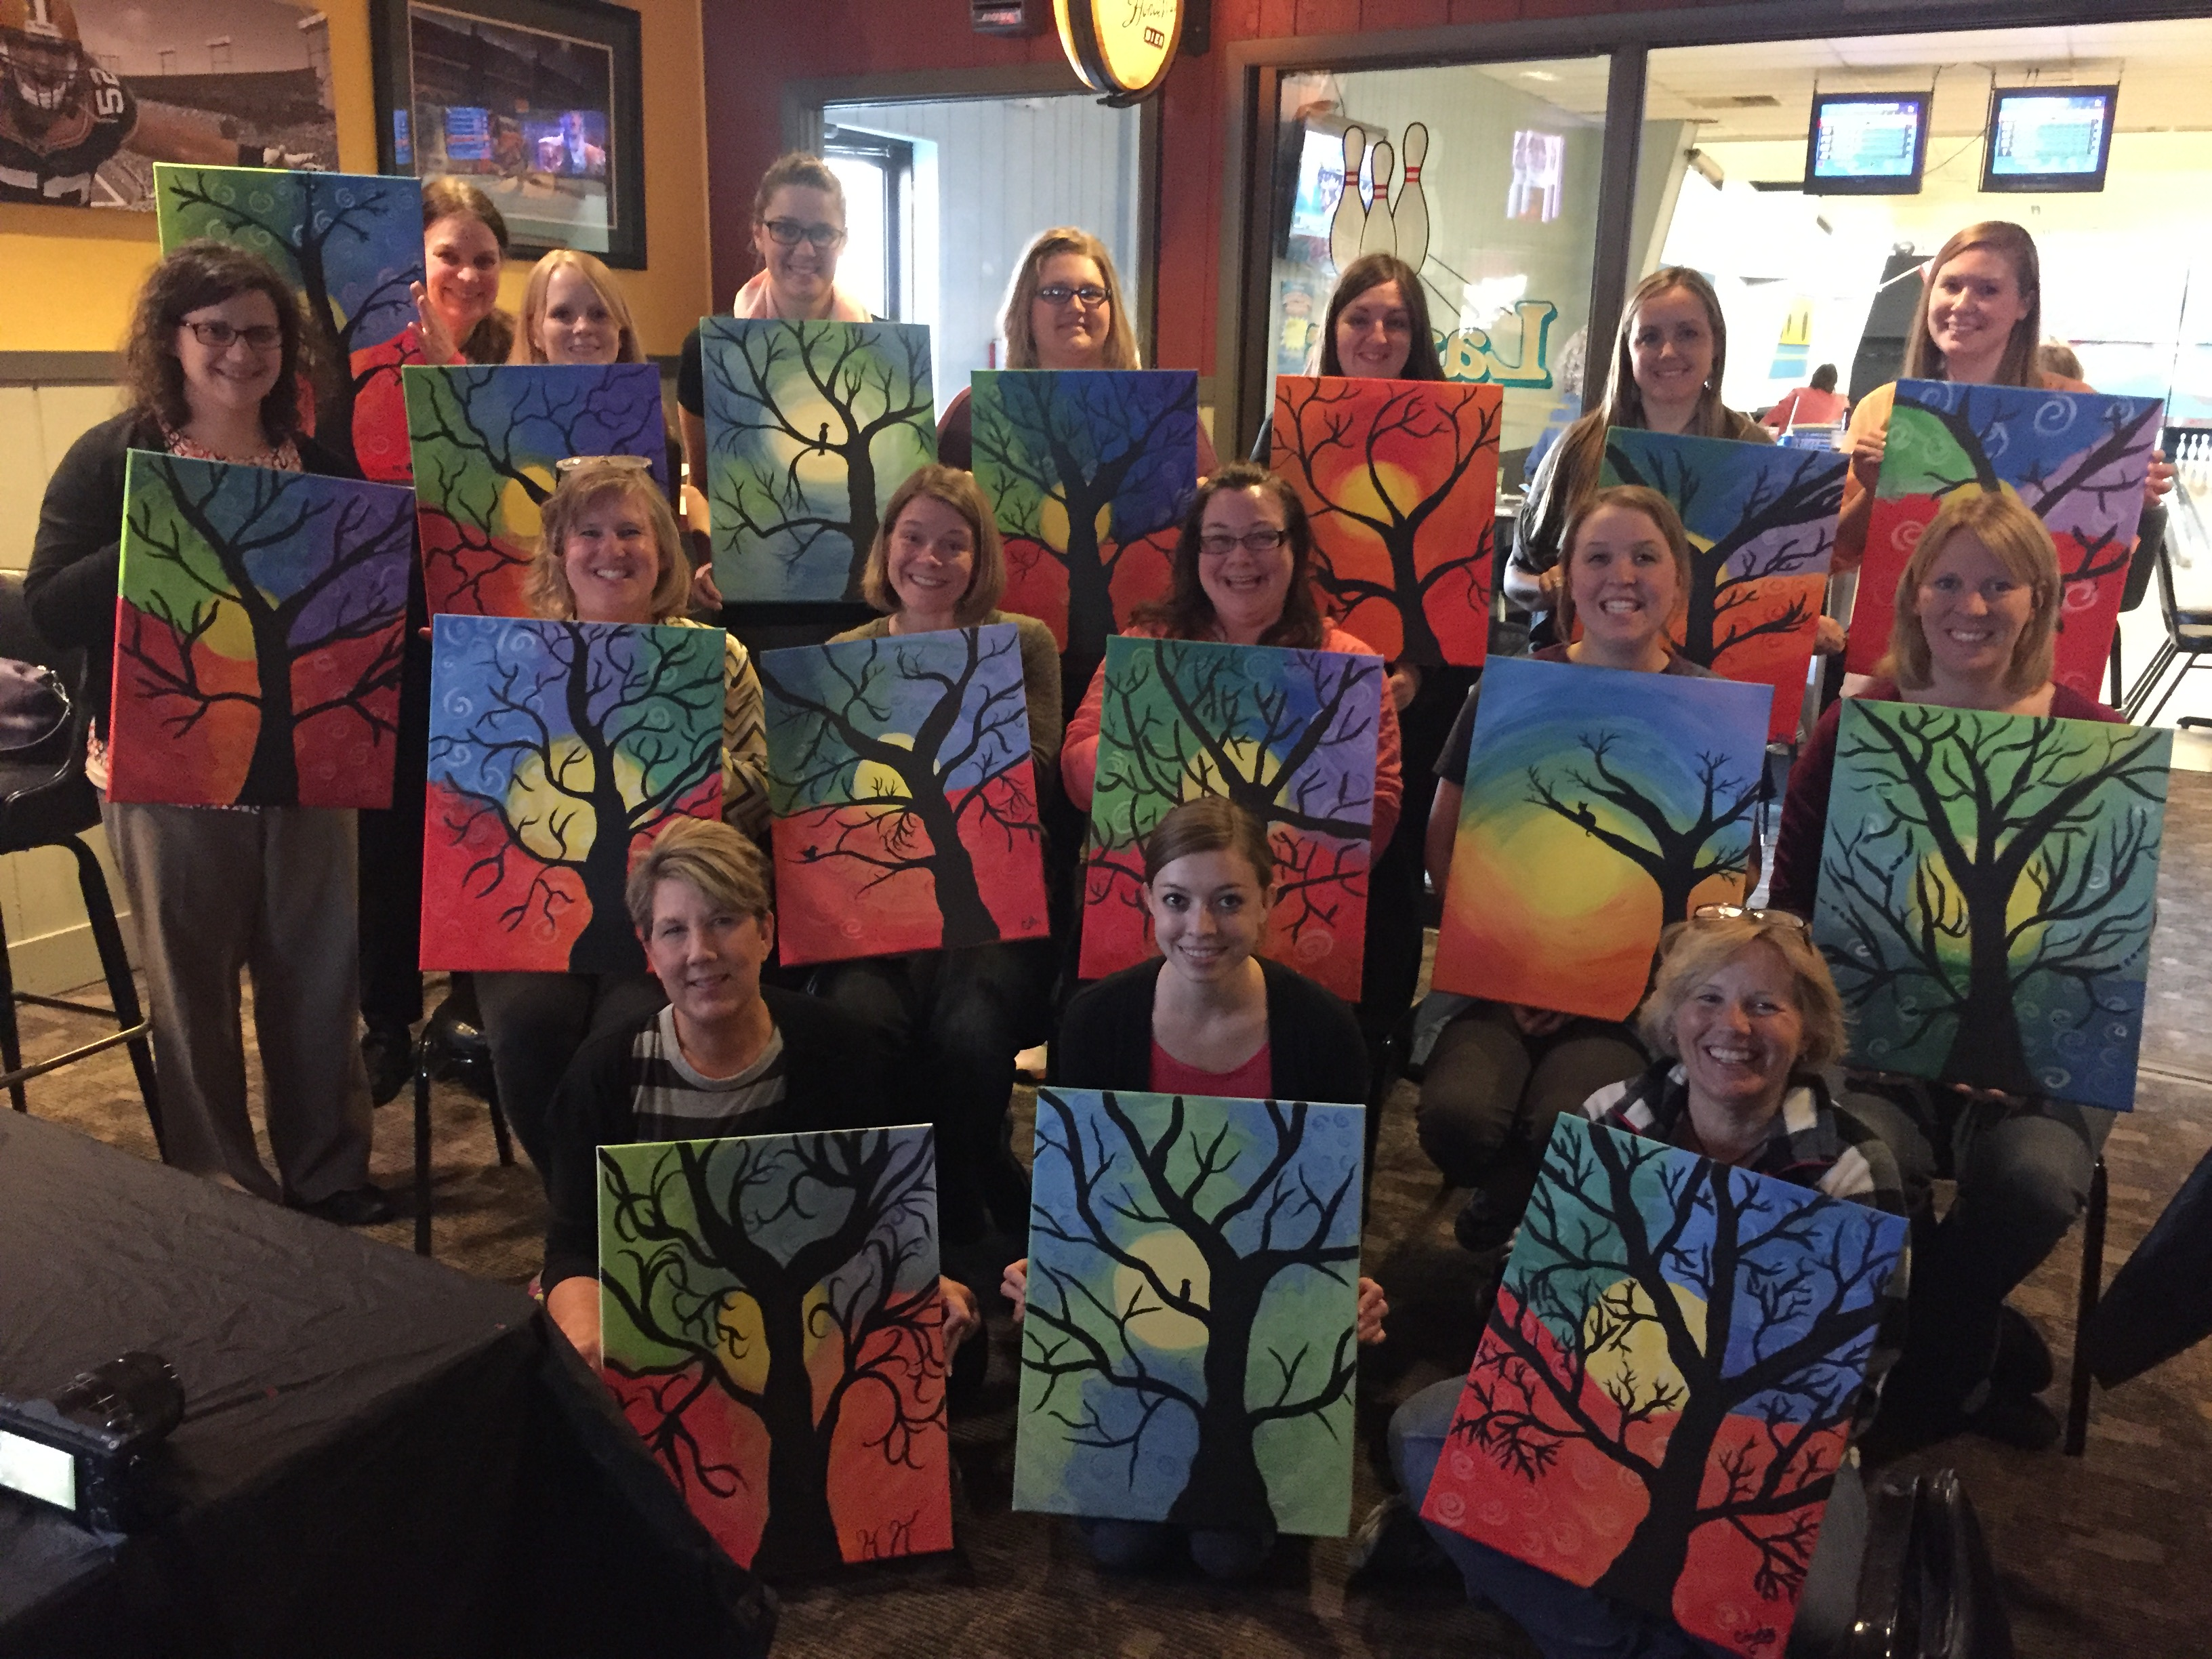 Clinton Elementary teachers enjoyed an evening out together at Cougar Lanes painting Swirly Trees! 4/14/16